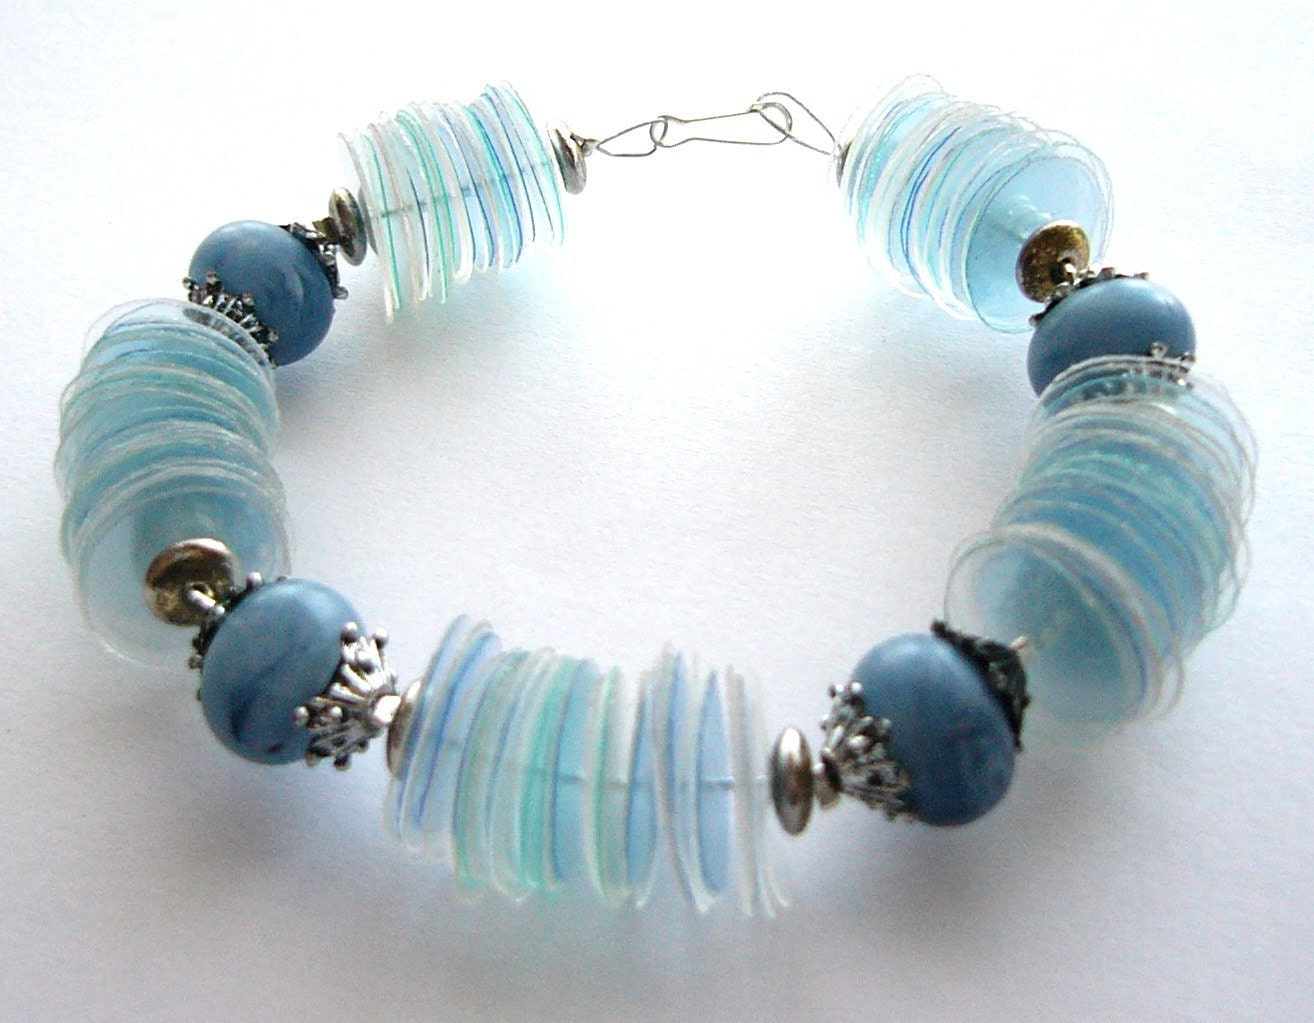 Upcycled jewelry blue bracelet made of recycled by - Plastic bottle jewelry making ...